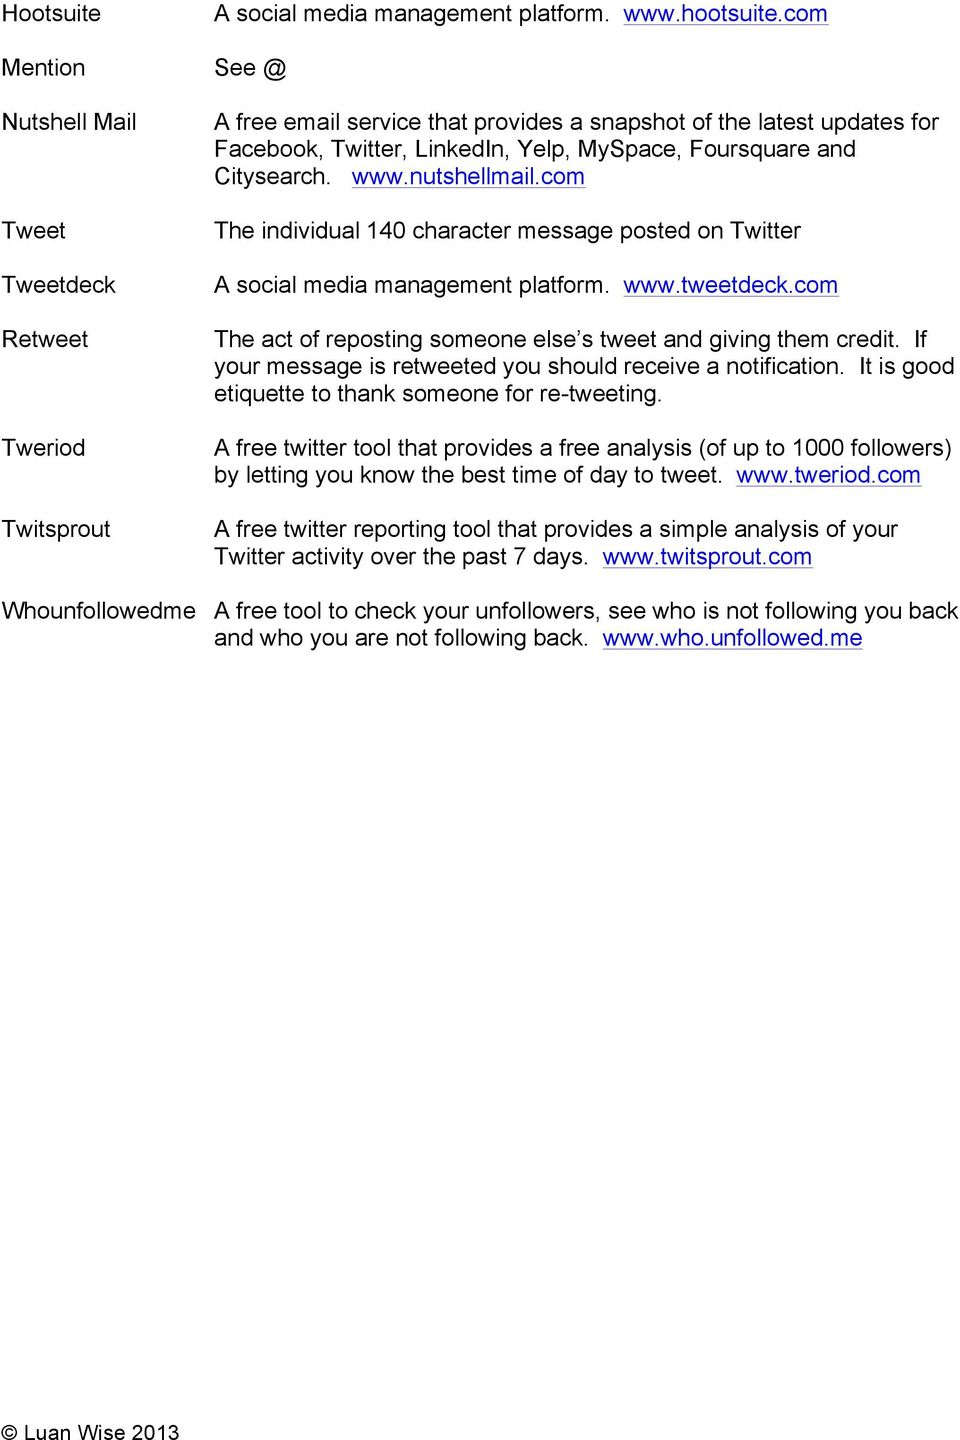 A short guide to Twitter - PDF